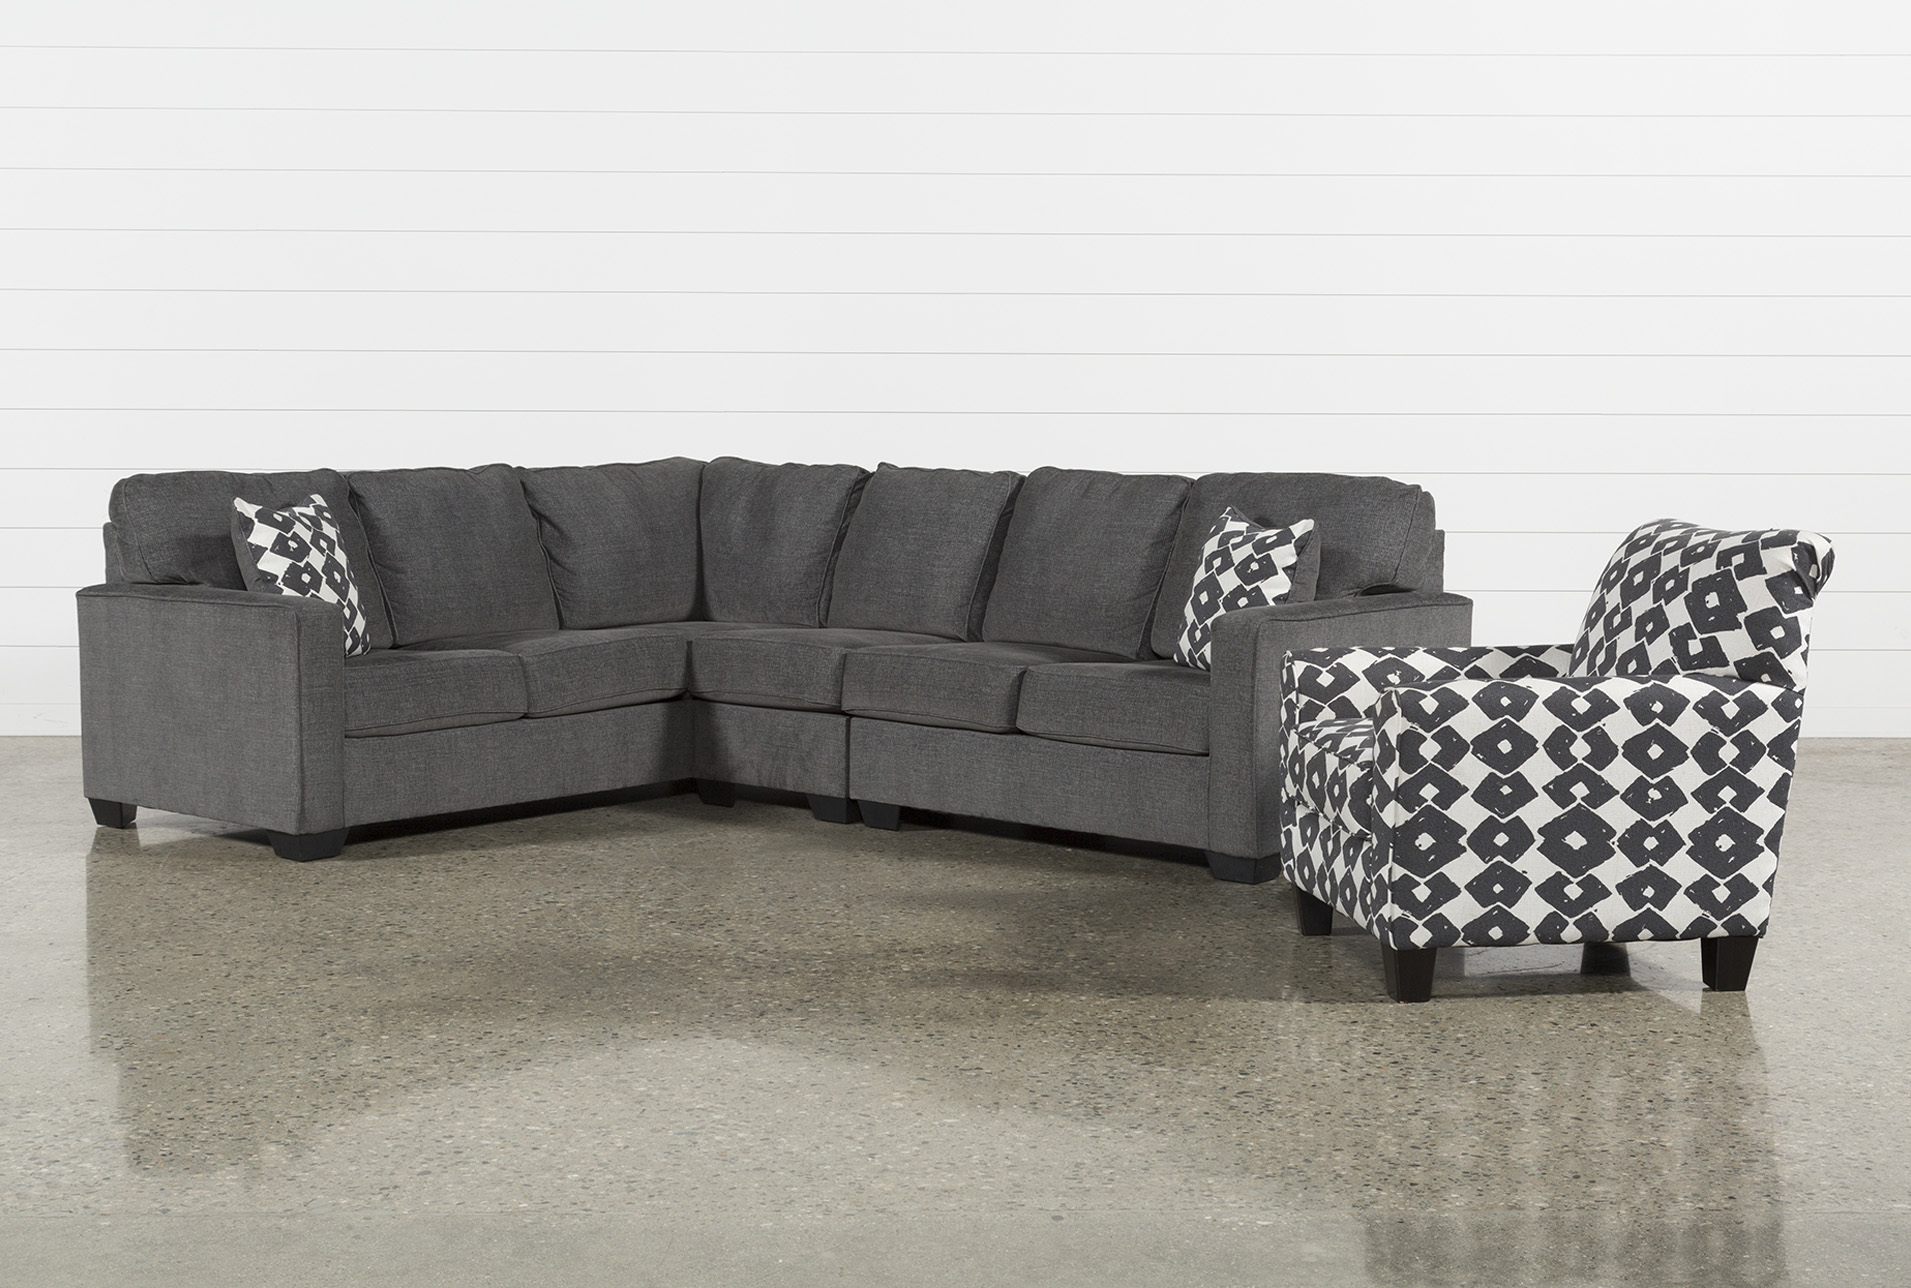 Turdur 3 Piece Raf Sectional With Accent Chair (Qty: 1) Has Been  Successfully Added To Your Cart.